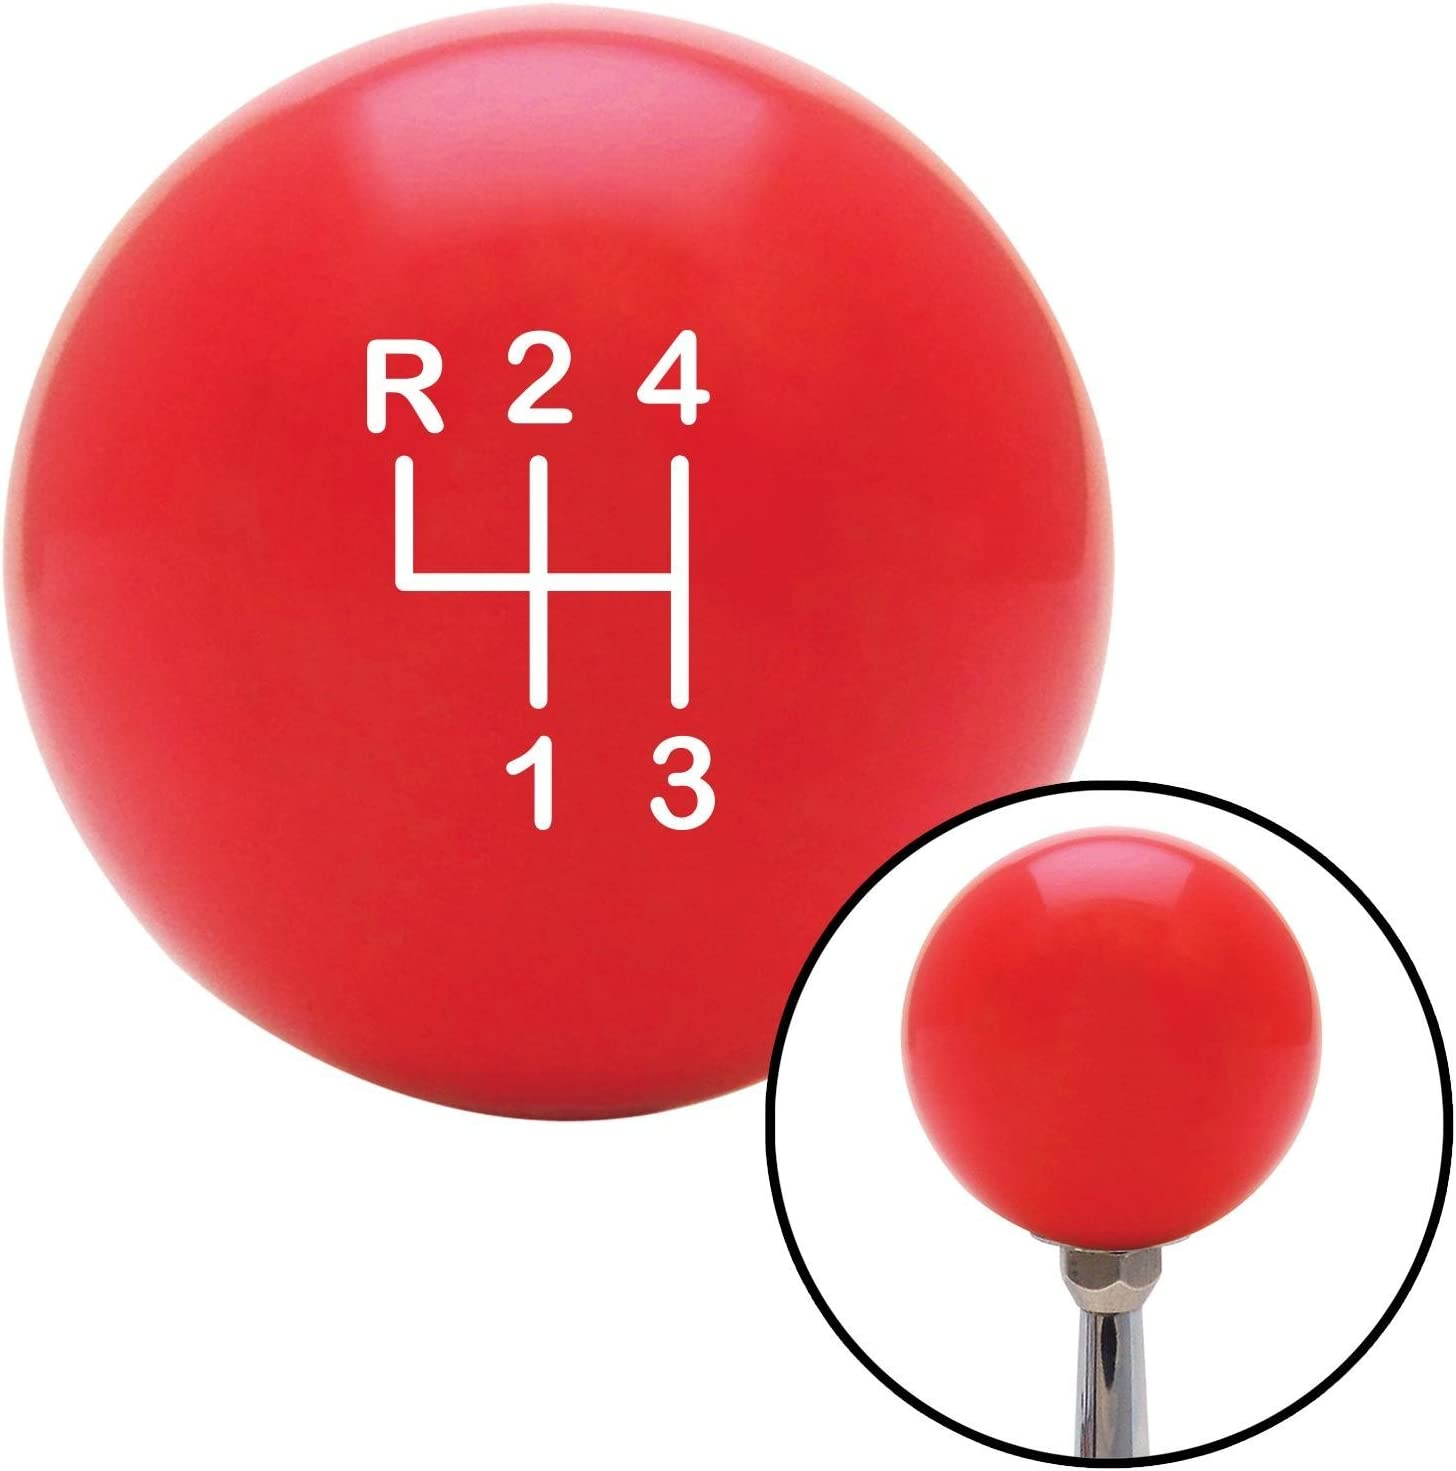 White Shift Pattern 8n American Shifter 100462 Red Shift Knob with M16 x 1.5 Insert